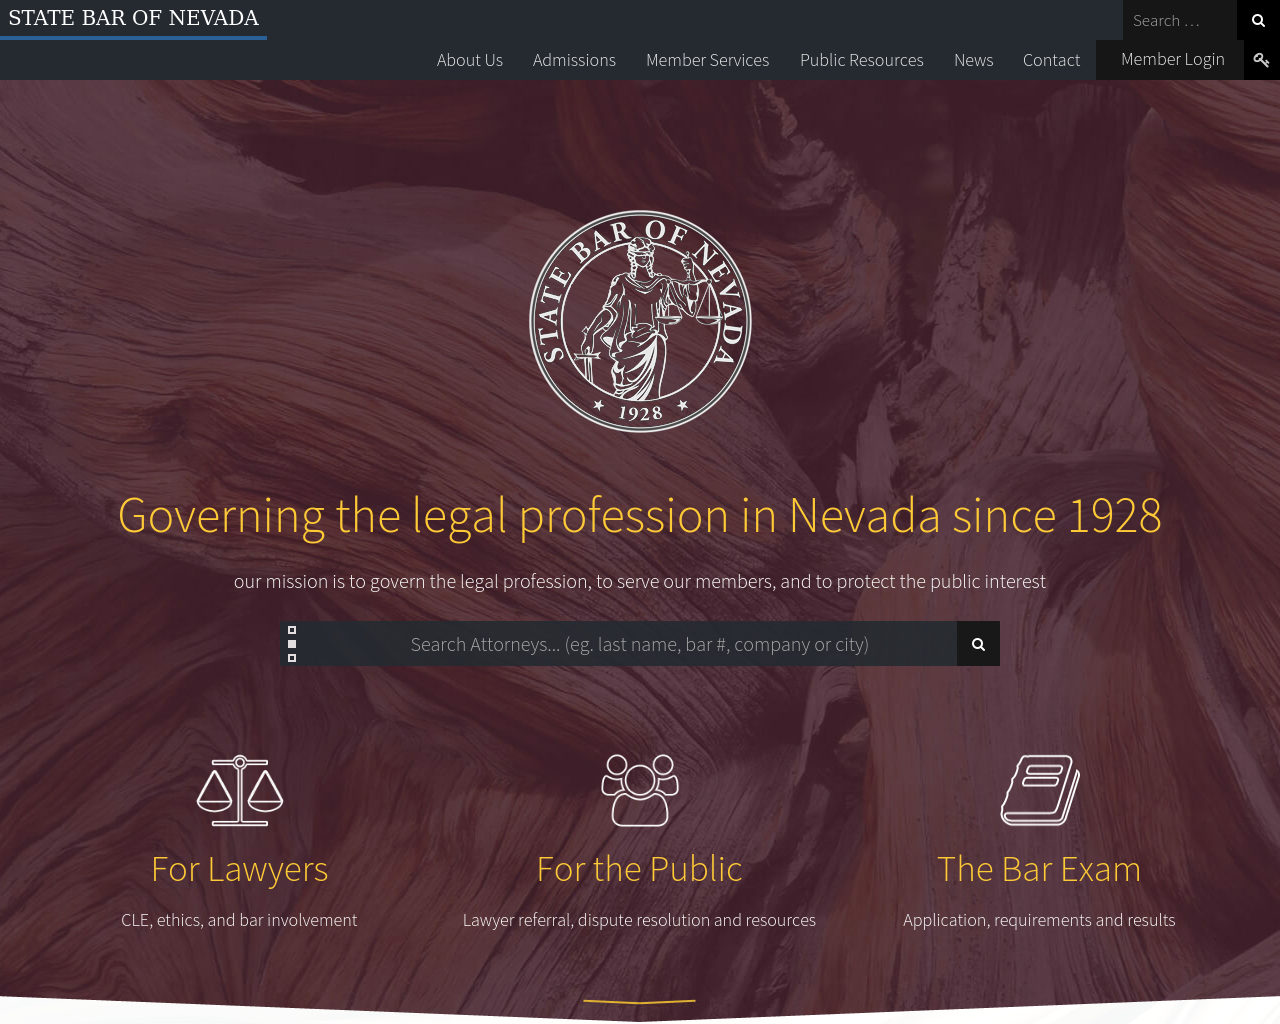 State-Bar-Of-Nevada-Advertising-Reviews-Pricing